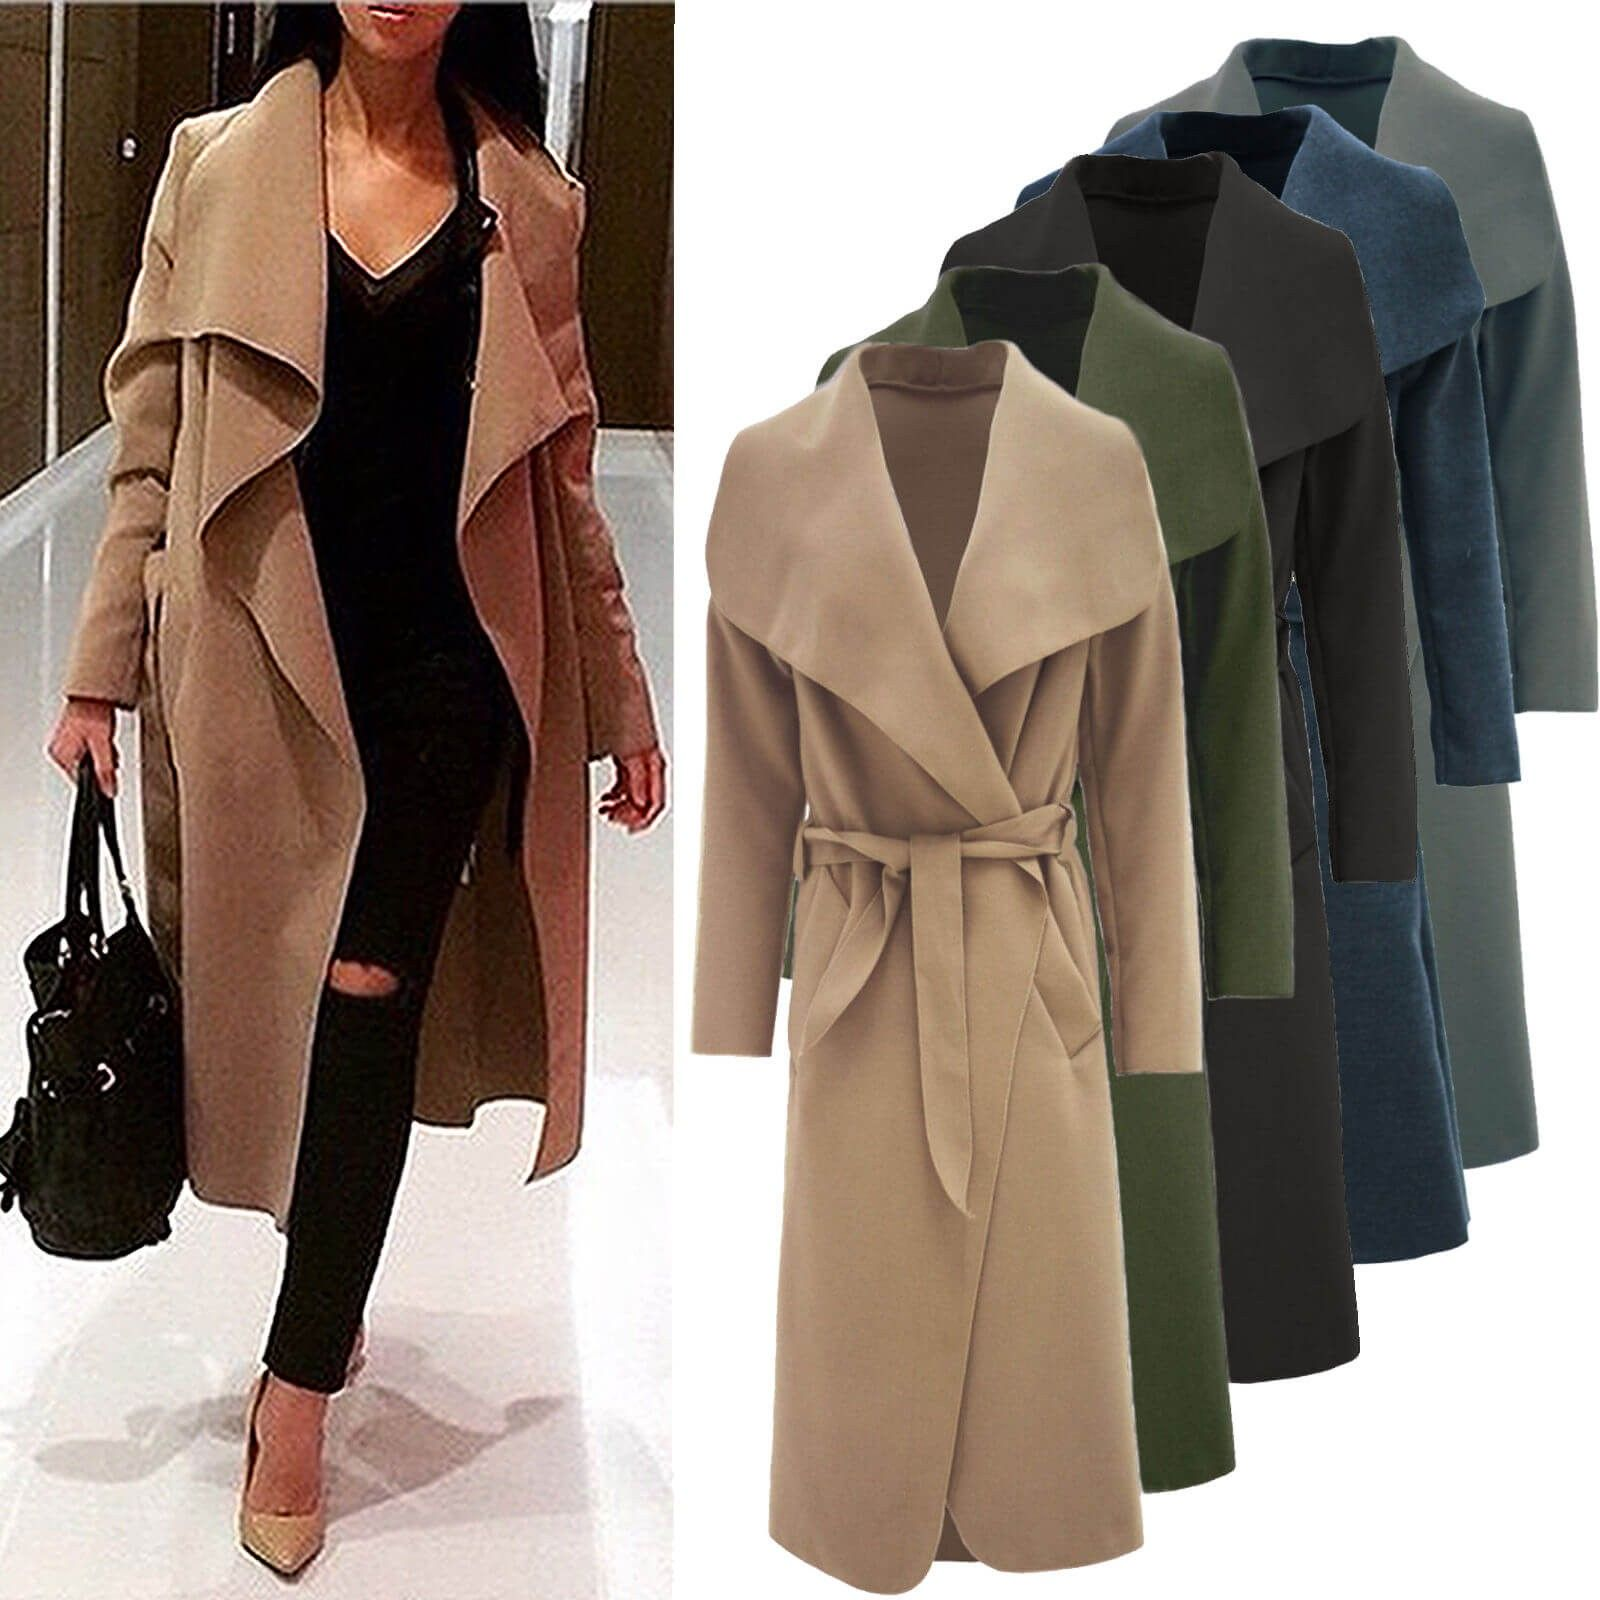 64e39941b69 Ladies Long Camel Waterfall Wrap Drape Belted Evening Winter Trench Jacket  Coat